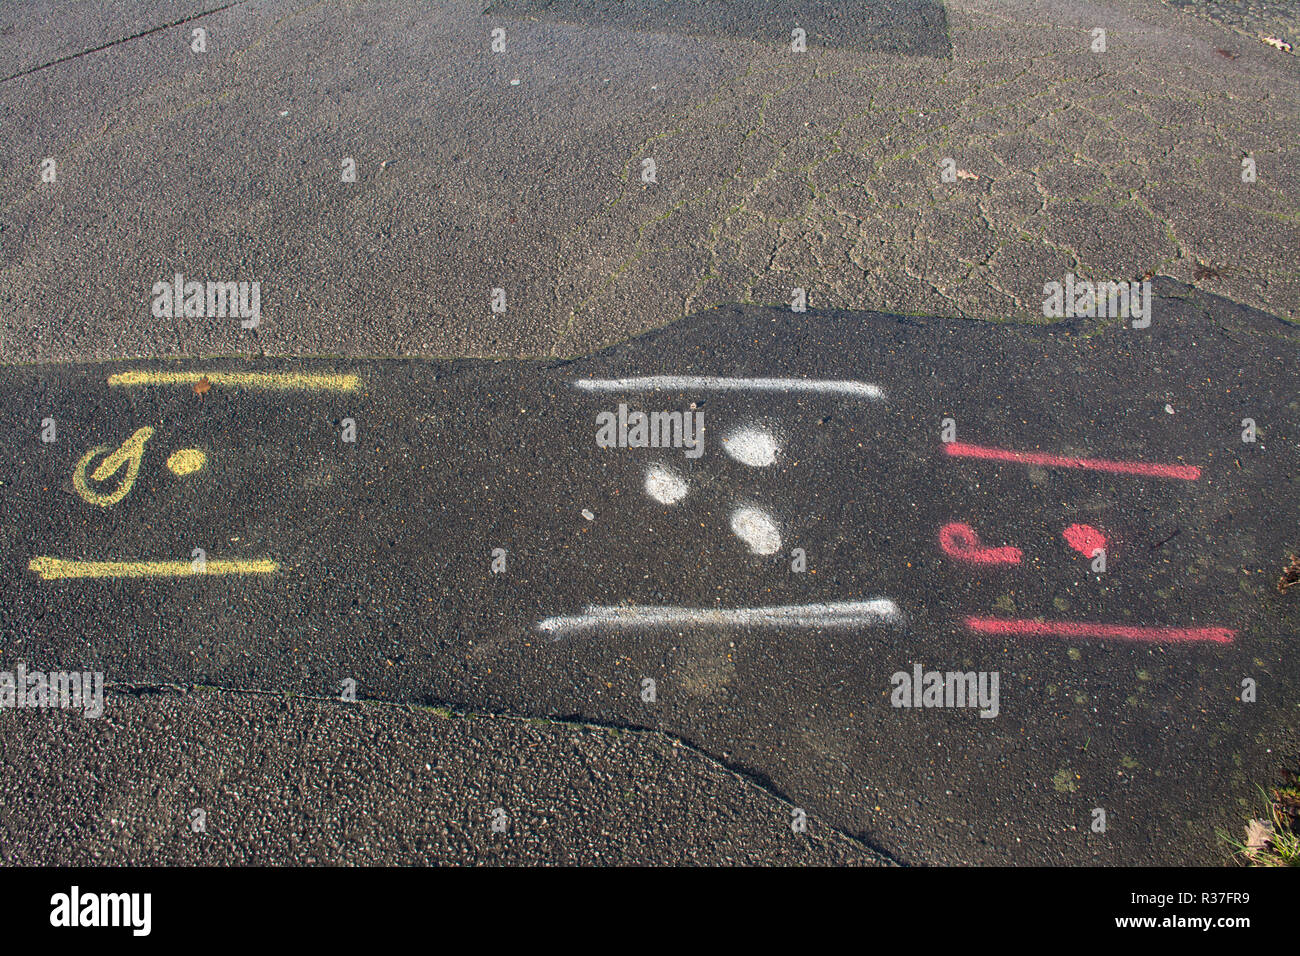 Spray painted markings squiggles on road made by contractors to indicate positioning of water, gas and electric utilities, pipes, cables - Stock Image